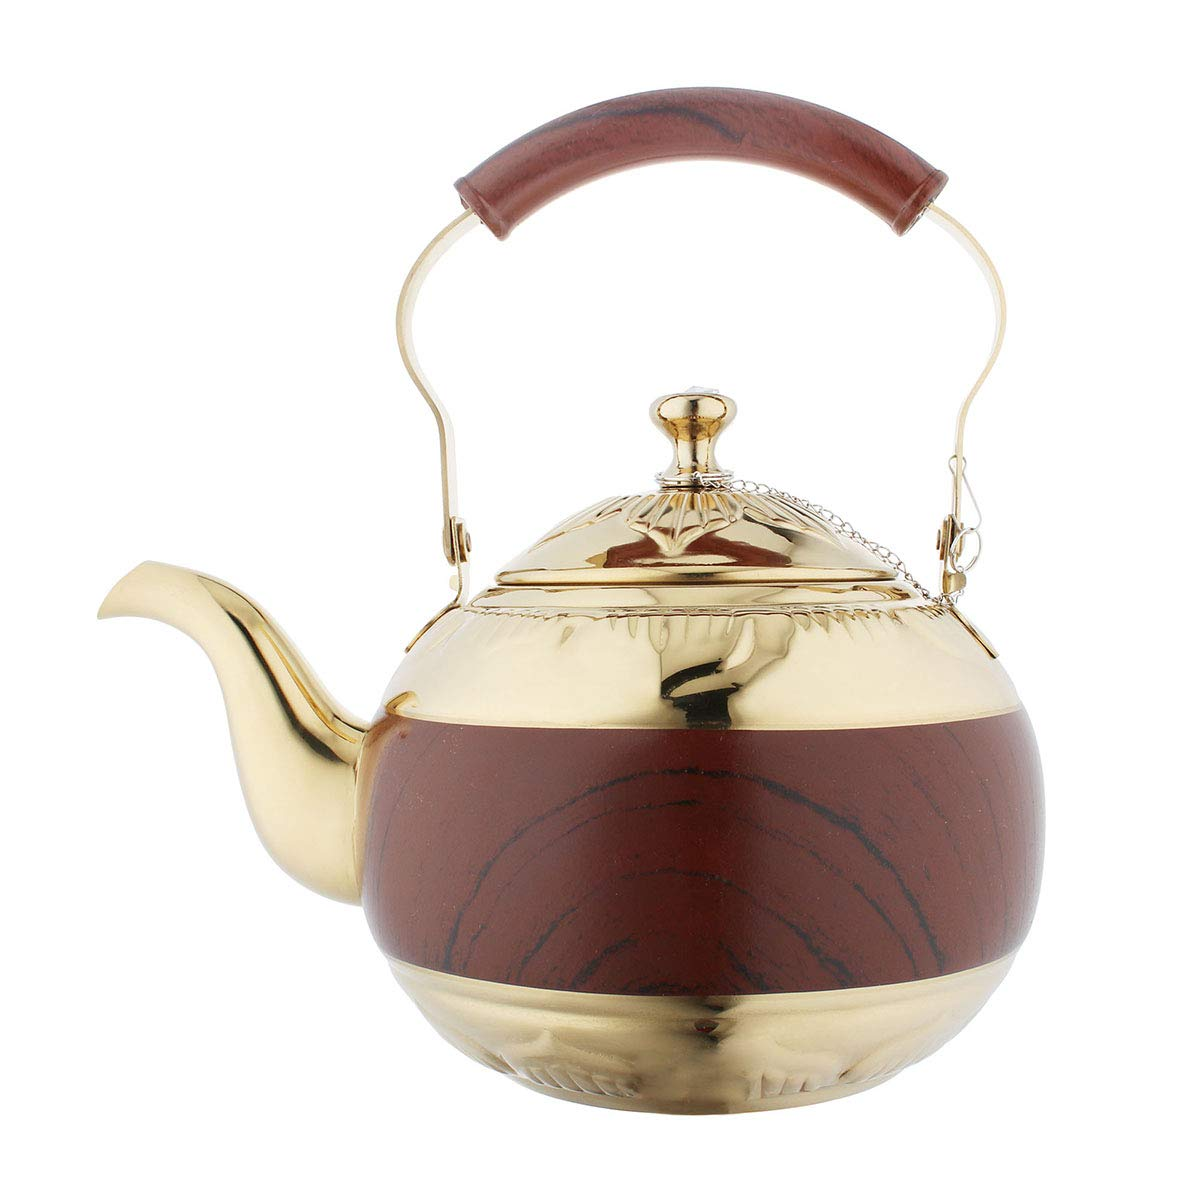 OMGard Gold Tea Pot with Infuser Loose Tea Leaf Filter 1.5 Liter Stainless Steel Teapot Coffee Water Small Kettle Strainer Set Warmer Teakettle for Stovetop Induction Stove Top 1.6 Quart 51 Ounce